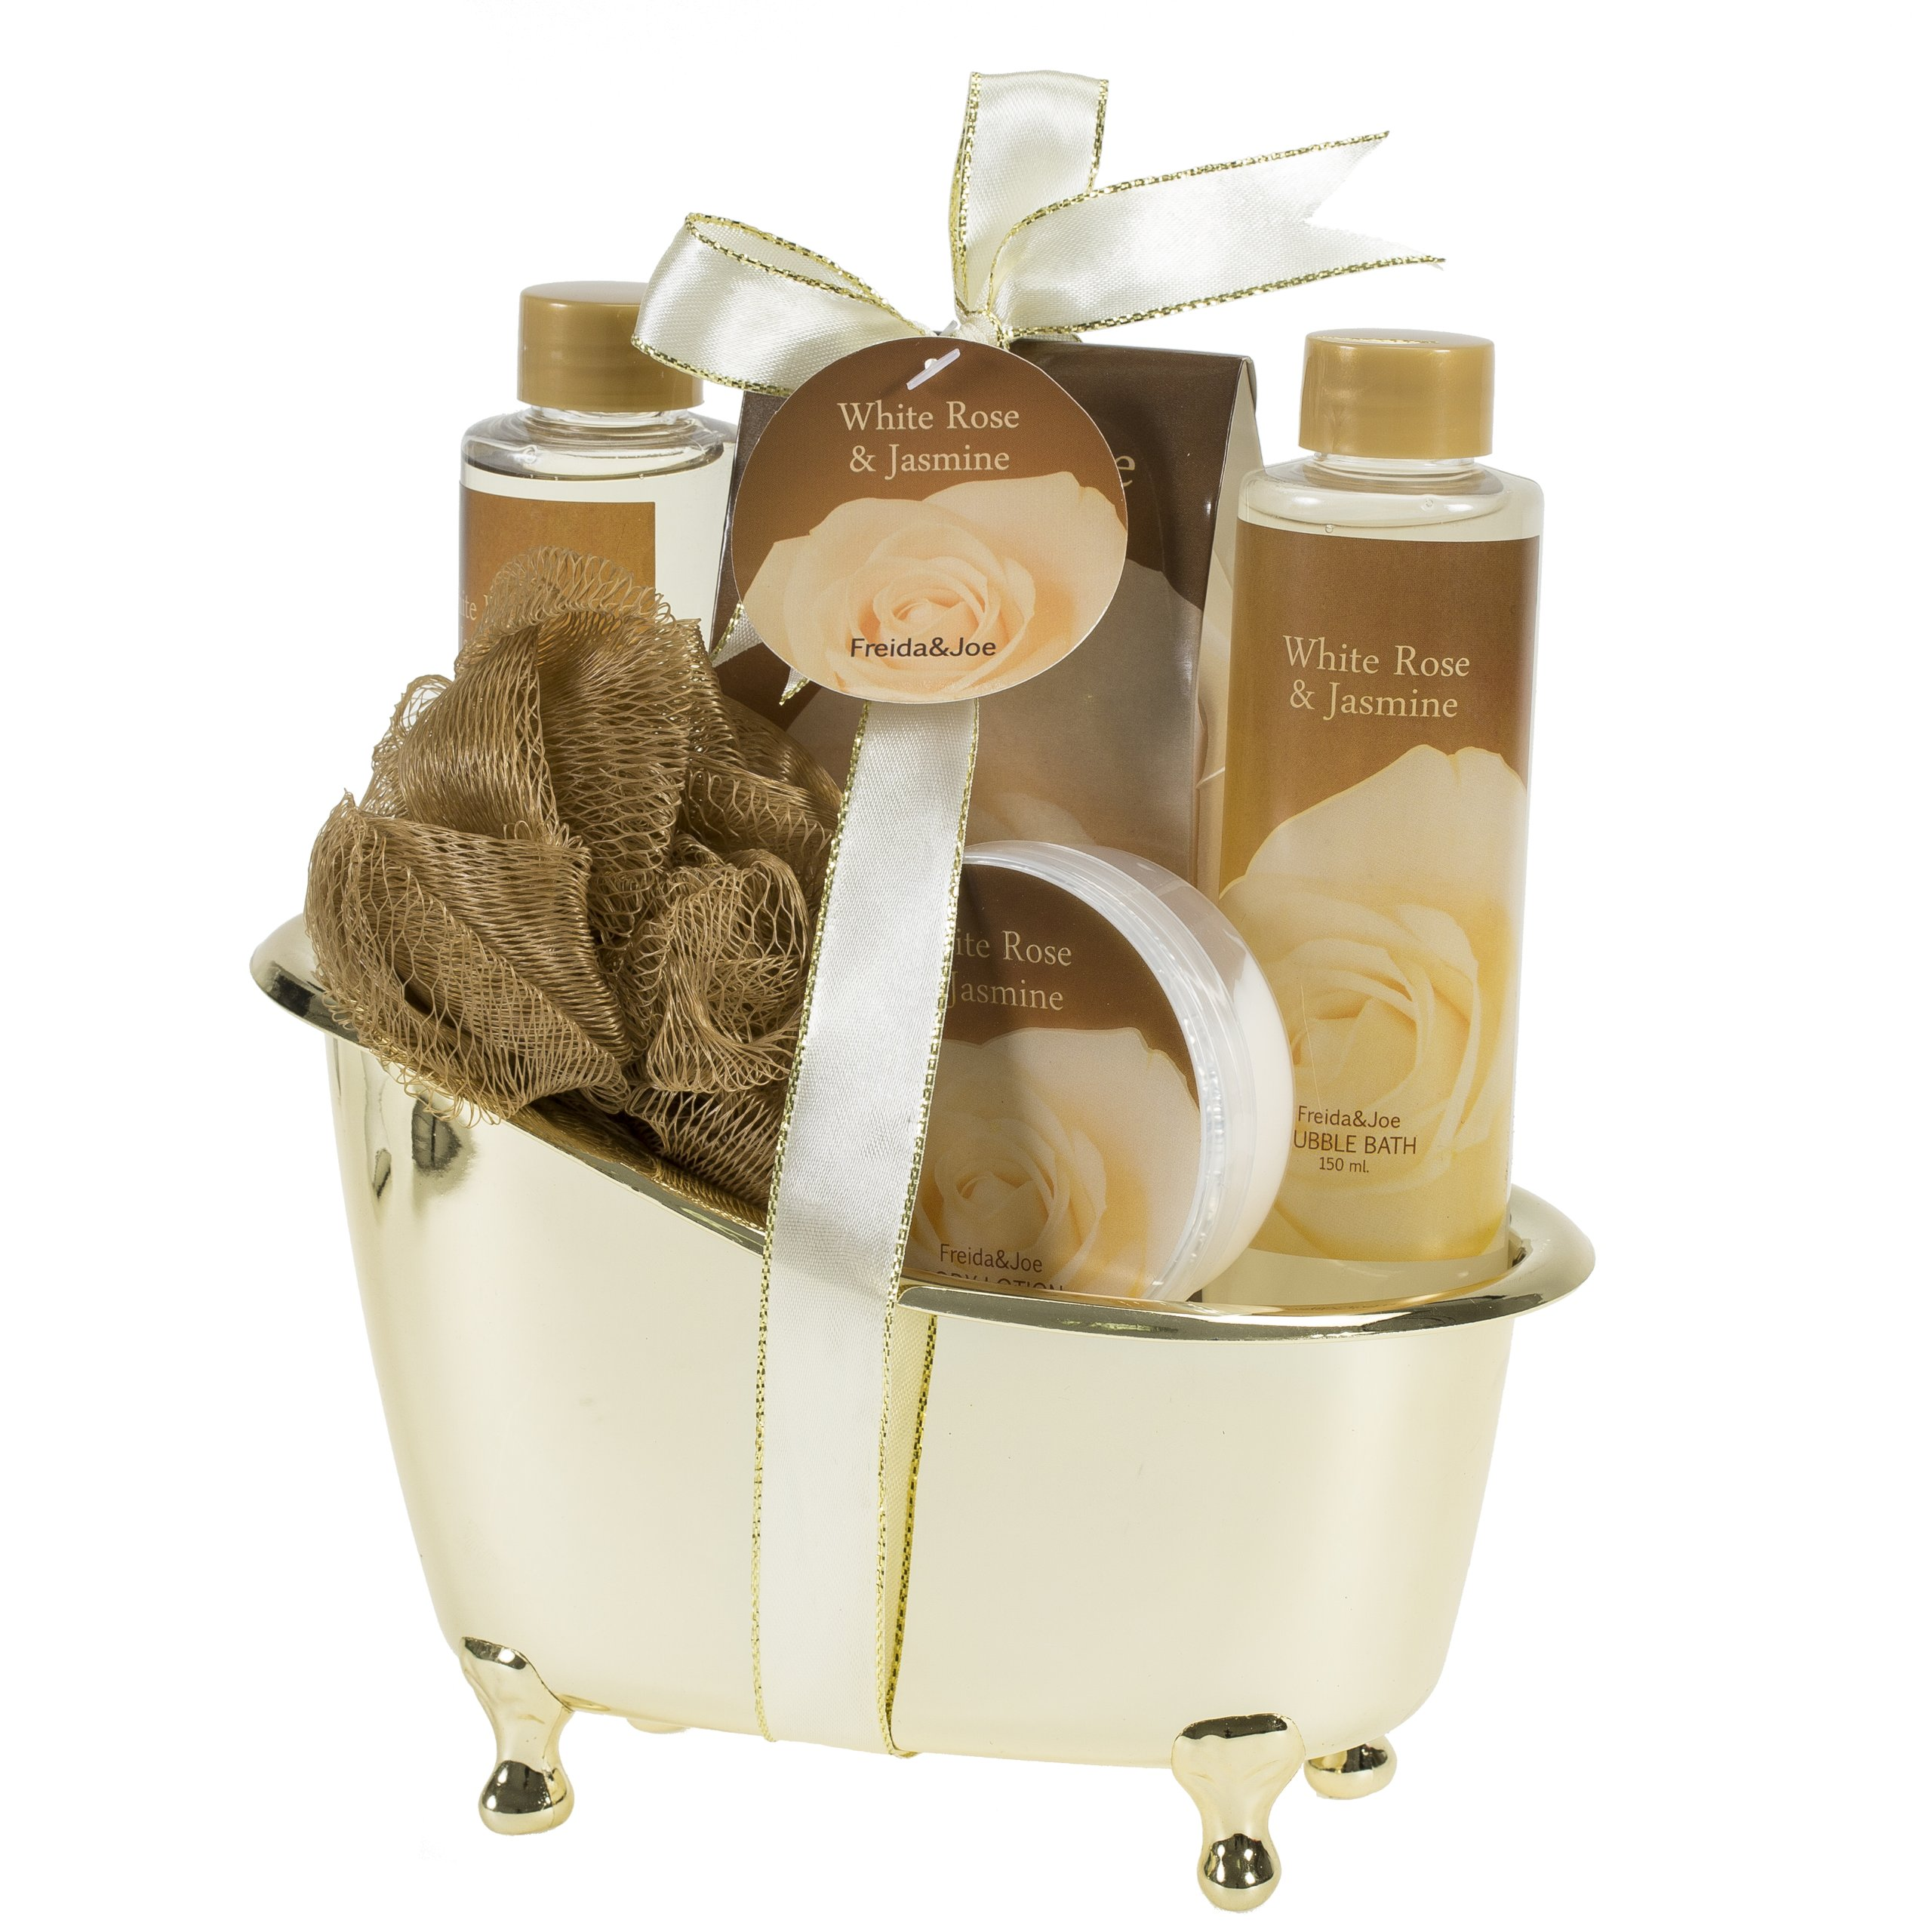 Freida and Joe, Luxurious and Elegant Spa Gift Set Basket for Women, Deluxe White Rose Jasmine Gold Tub, Hydrating and Refreshing Bathroom Gel, Bubble Bath, Lotion and Salts